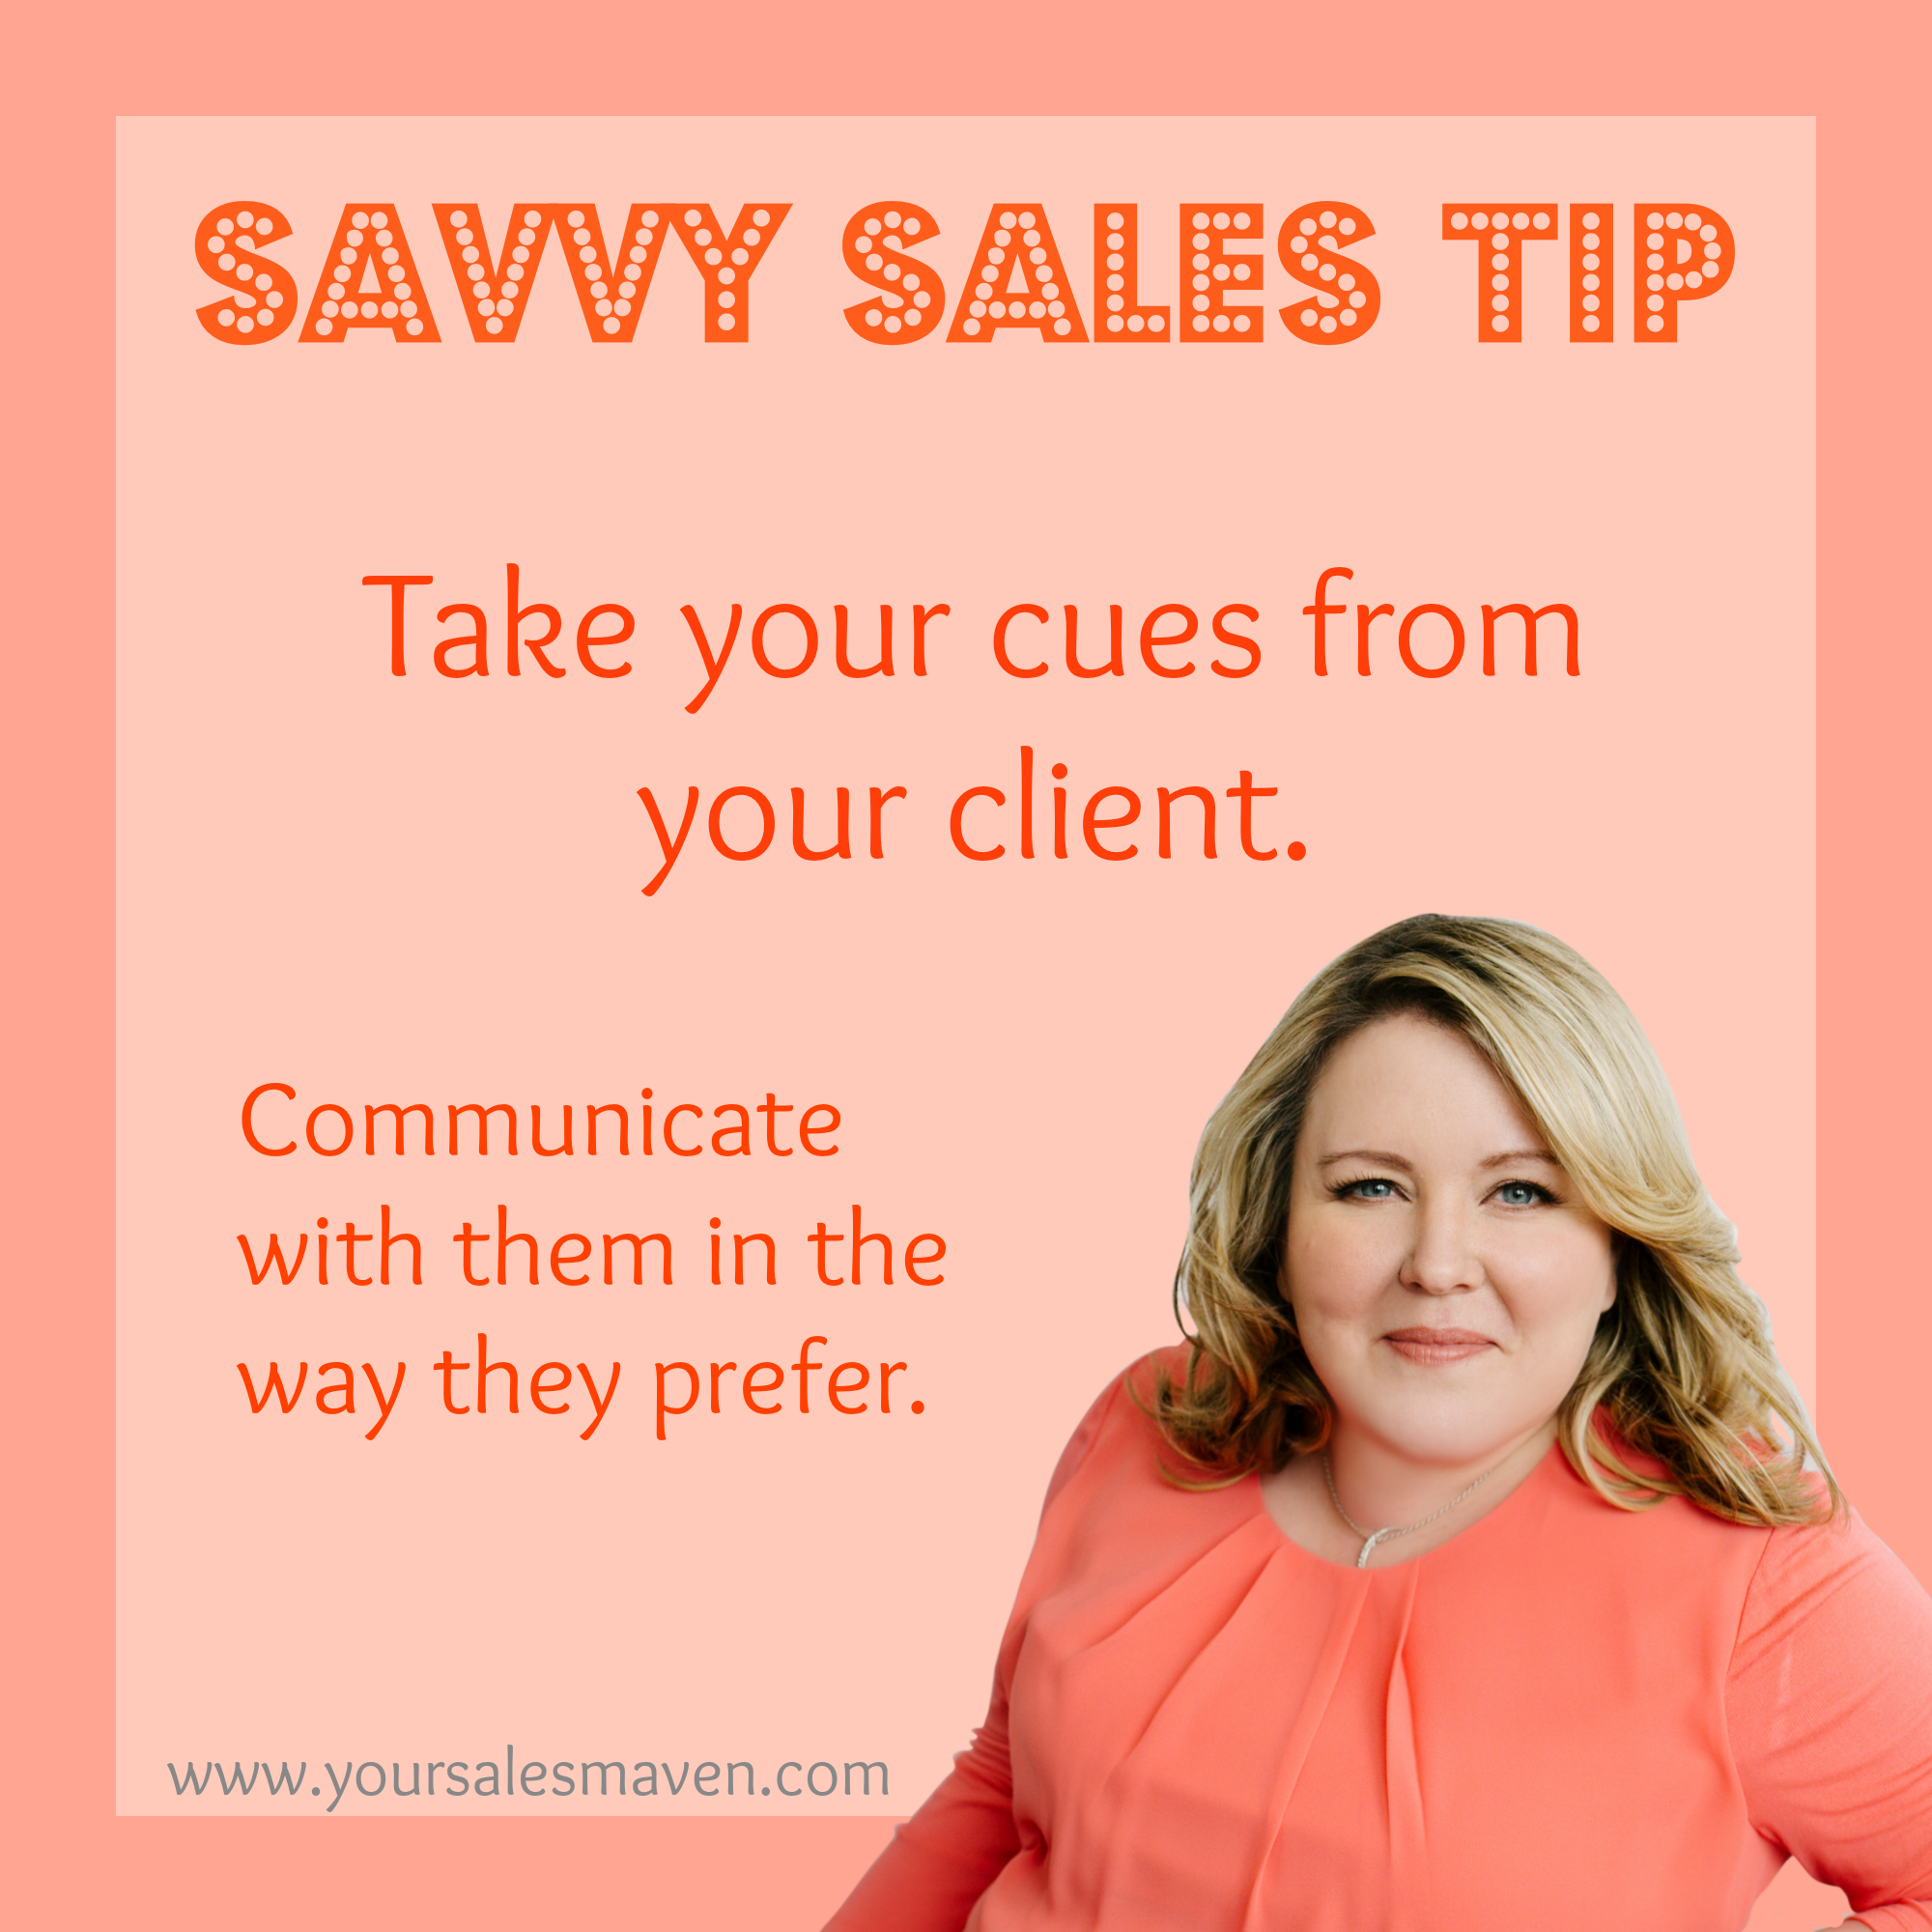 Savvy Sales Tip- Take Your Cues from your client